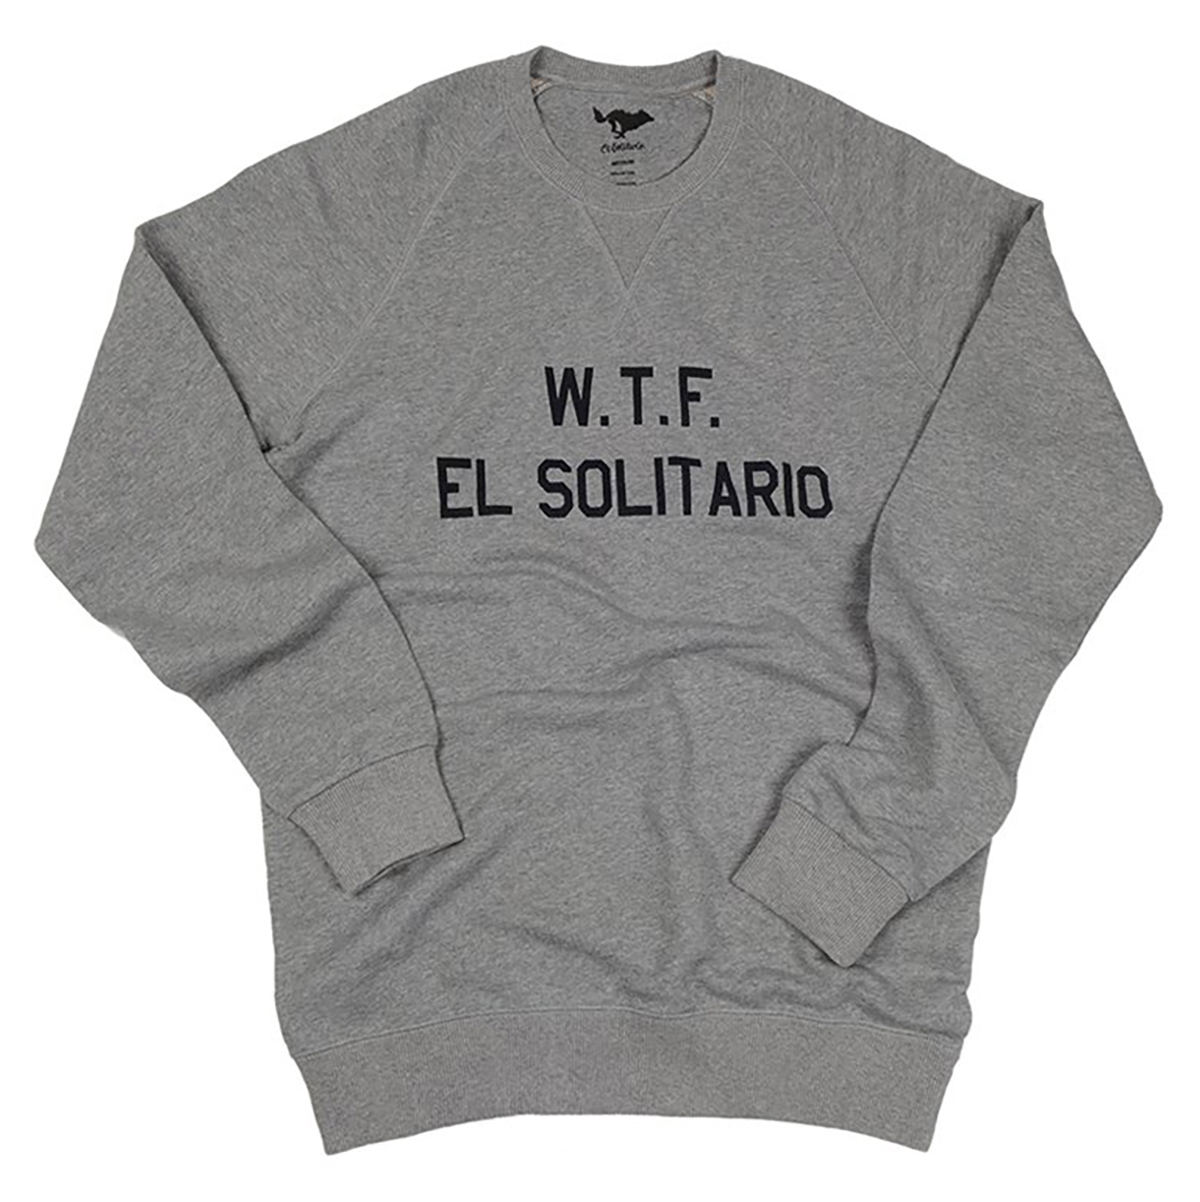 xwtf-el-solitario-sweatshirt-grey.jpg.pagespeed.ic.T1ibV78EvN